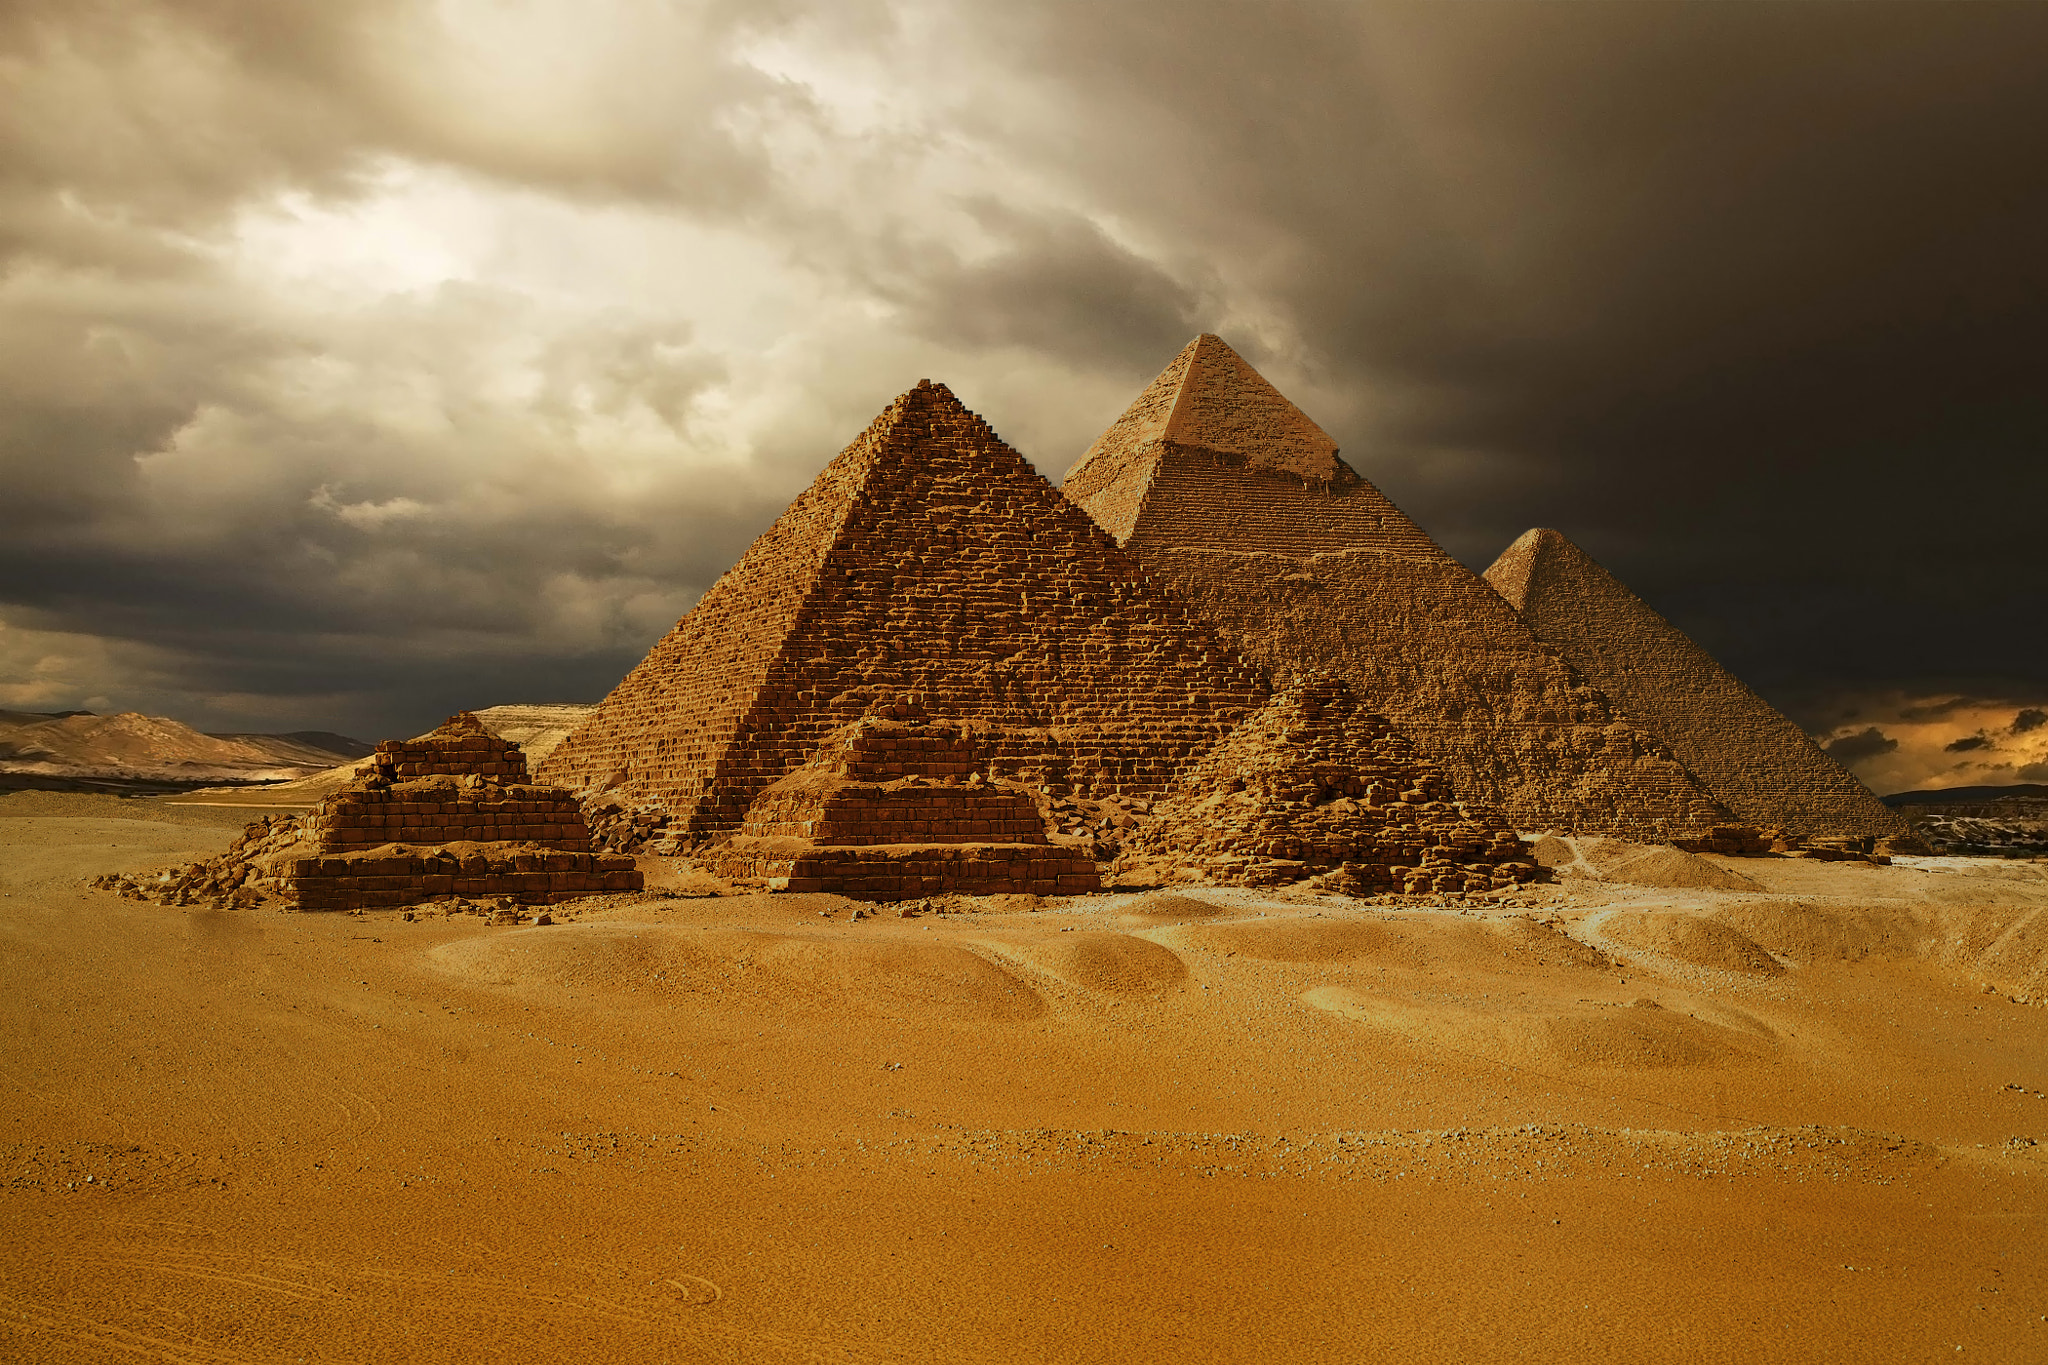 Photograph Pyramids of Giza, Cheops pyramid by lerchhartmut on 500px